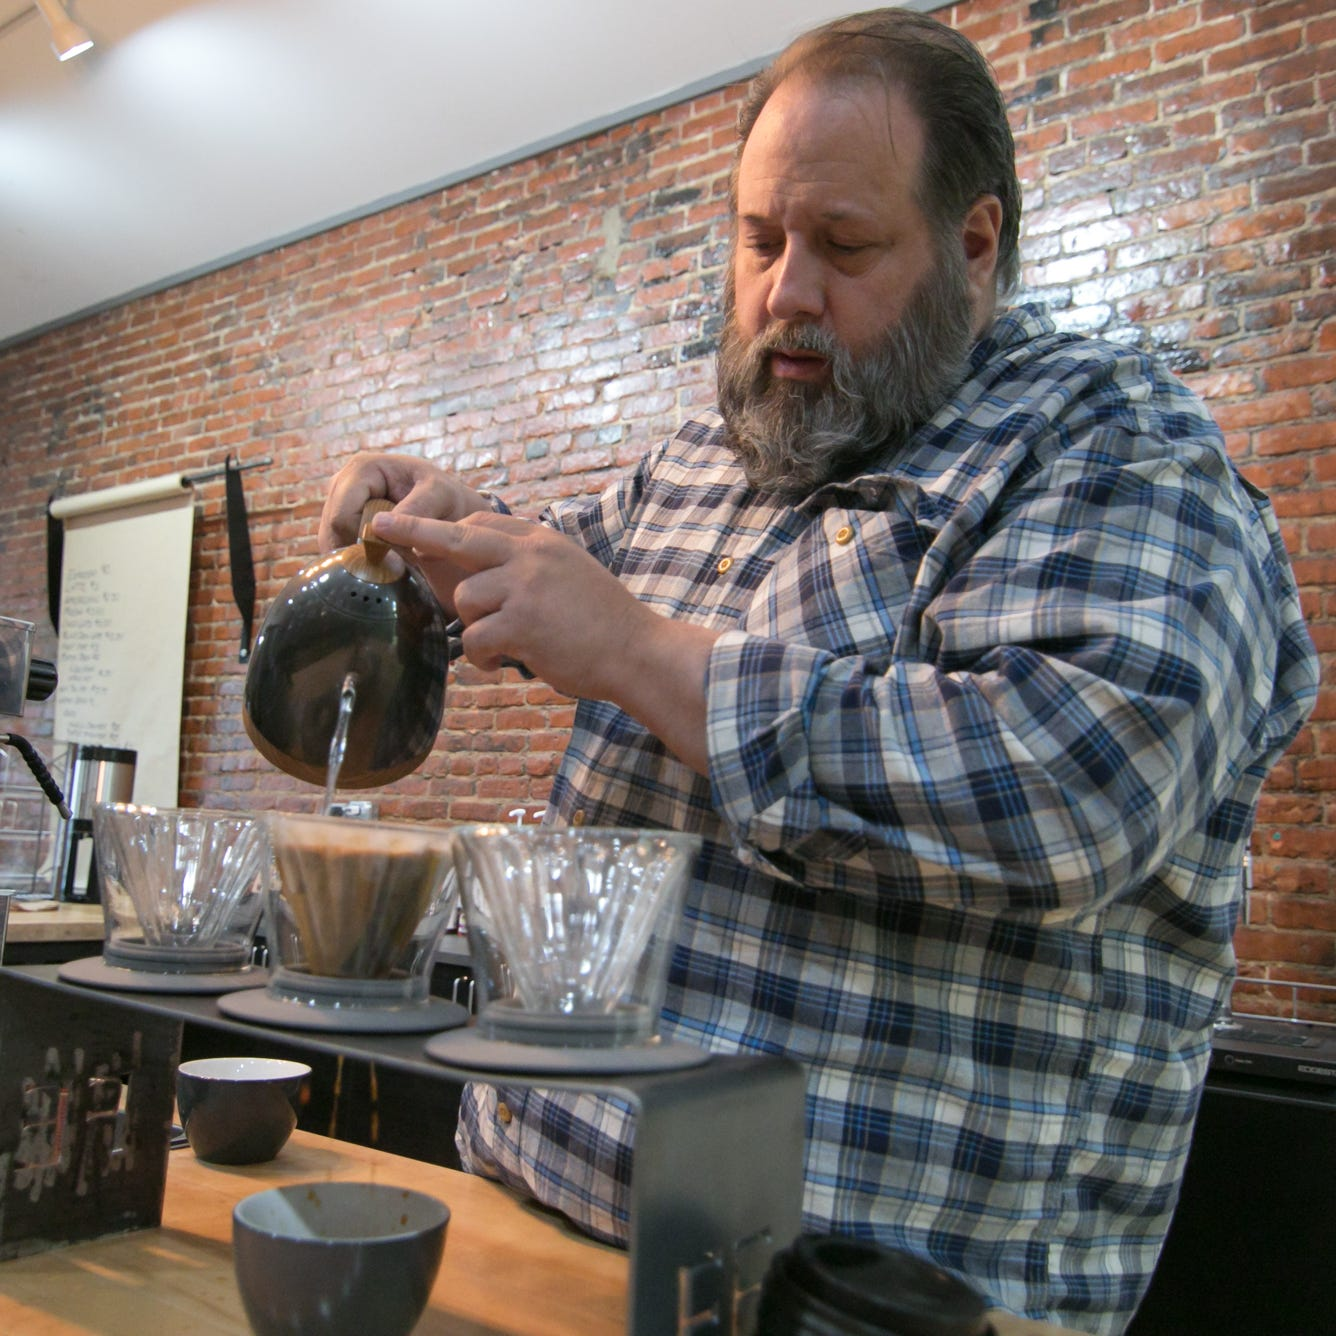 Specialty roasts focus of new coffee shop open in downtown Howell